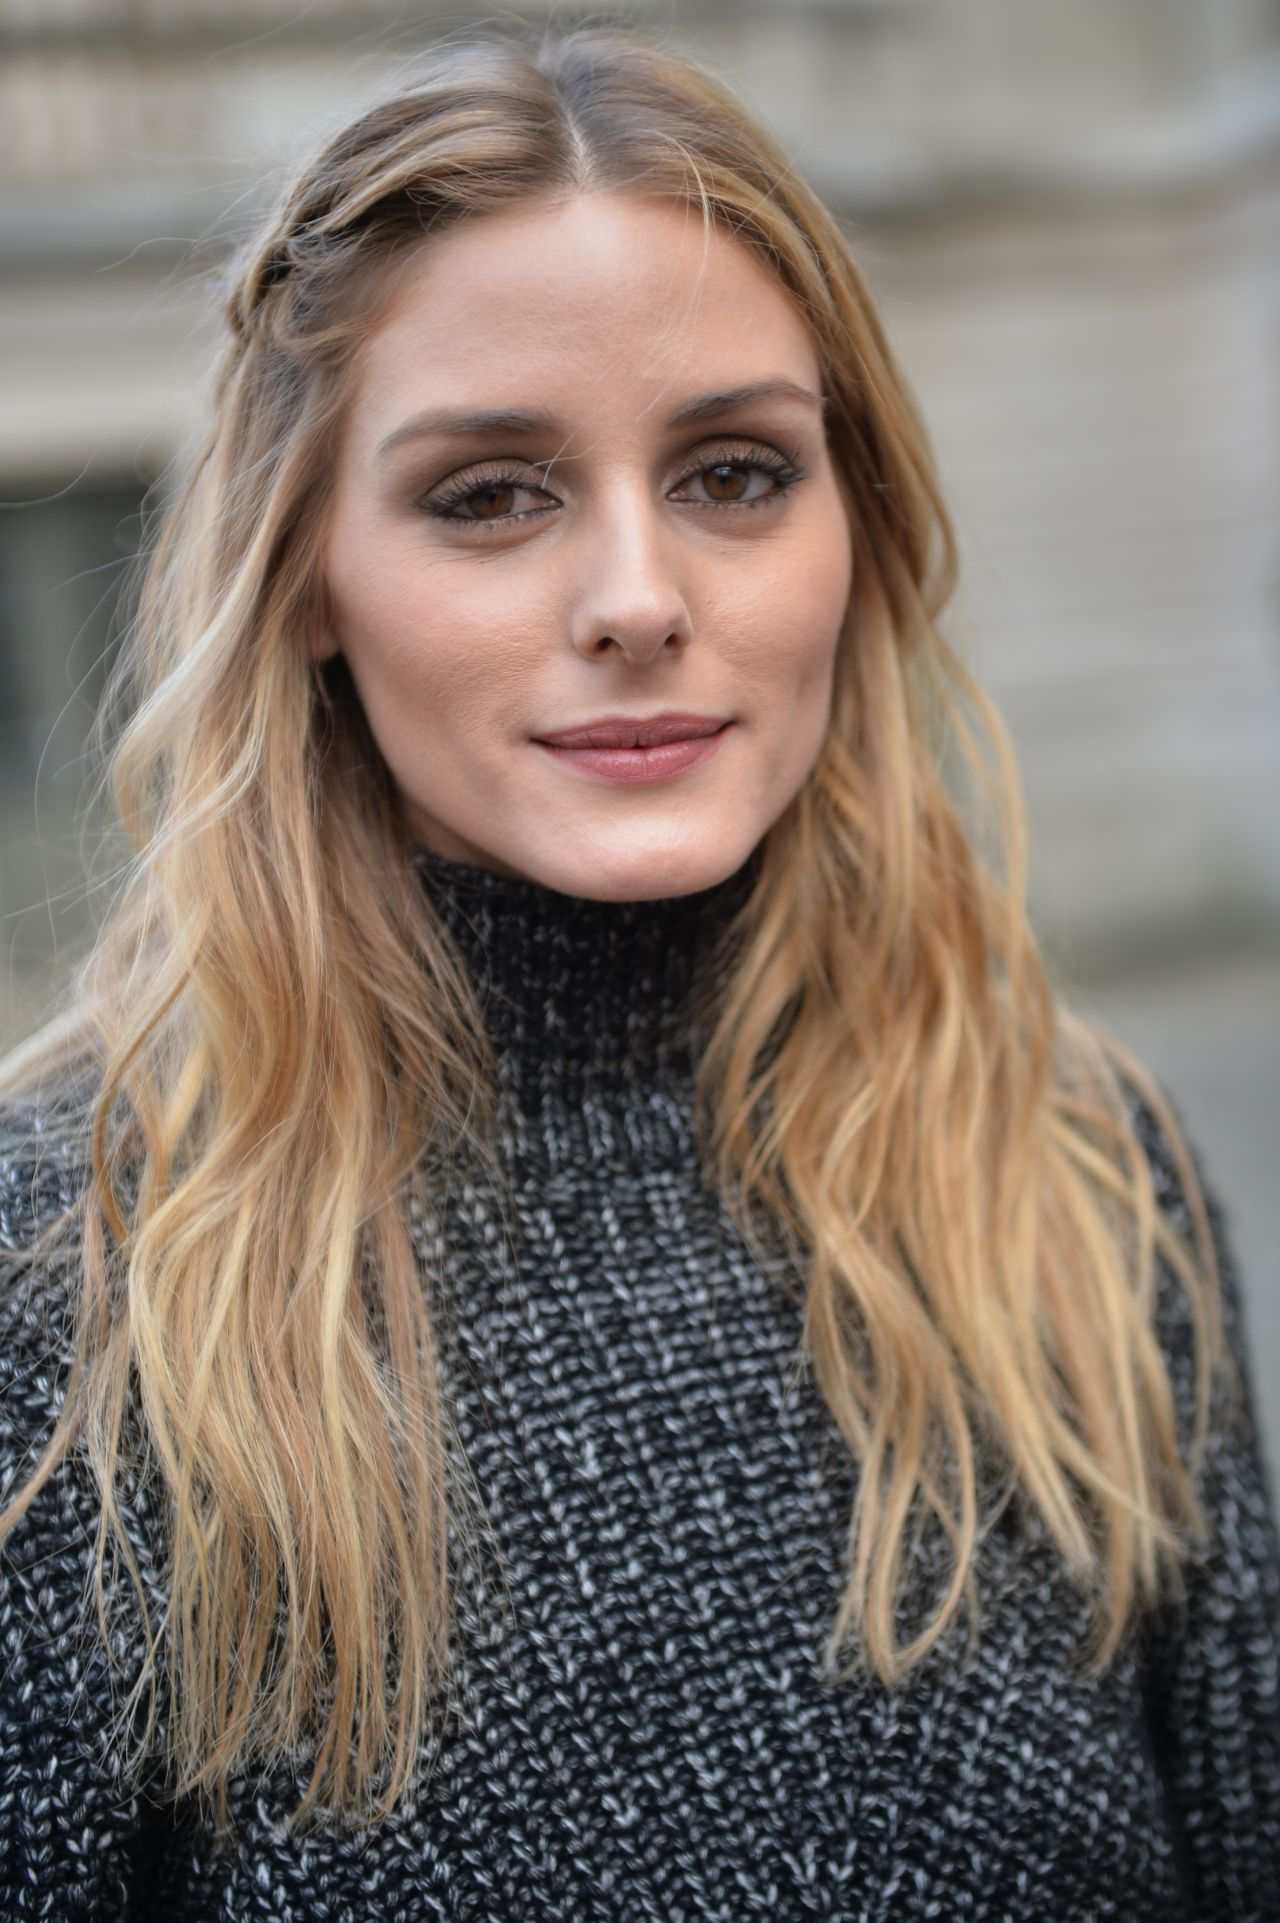 HQ Olivia Palermo Wallpapers | File 294.63Kb